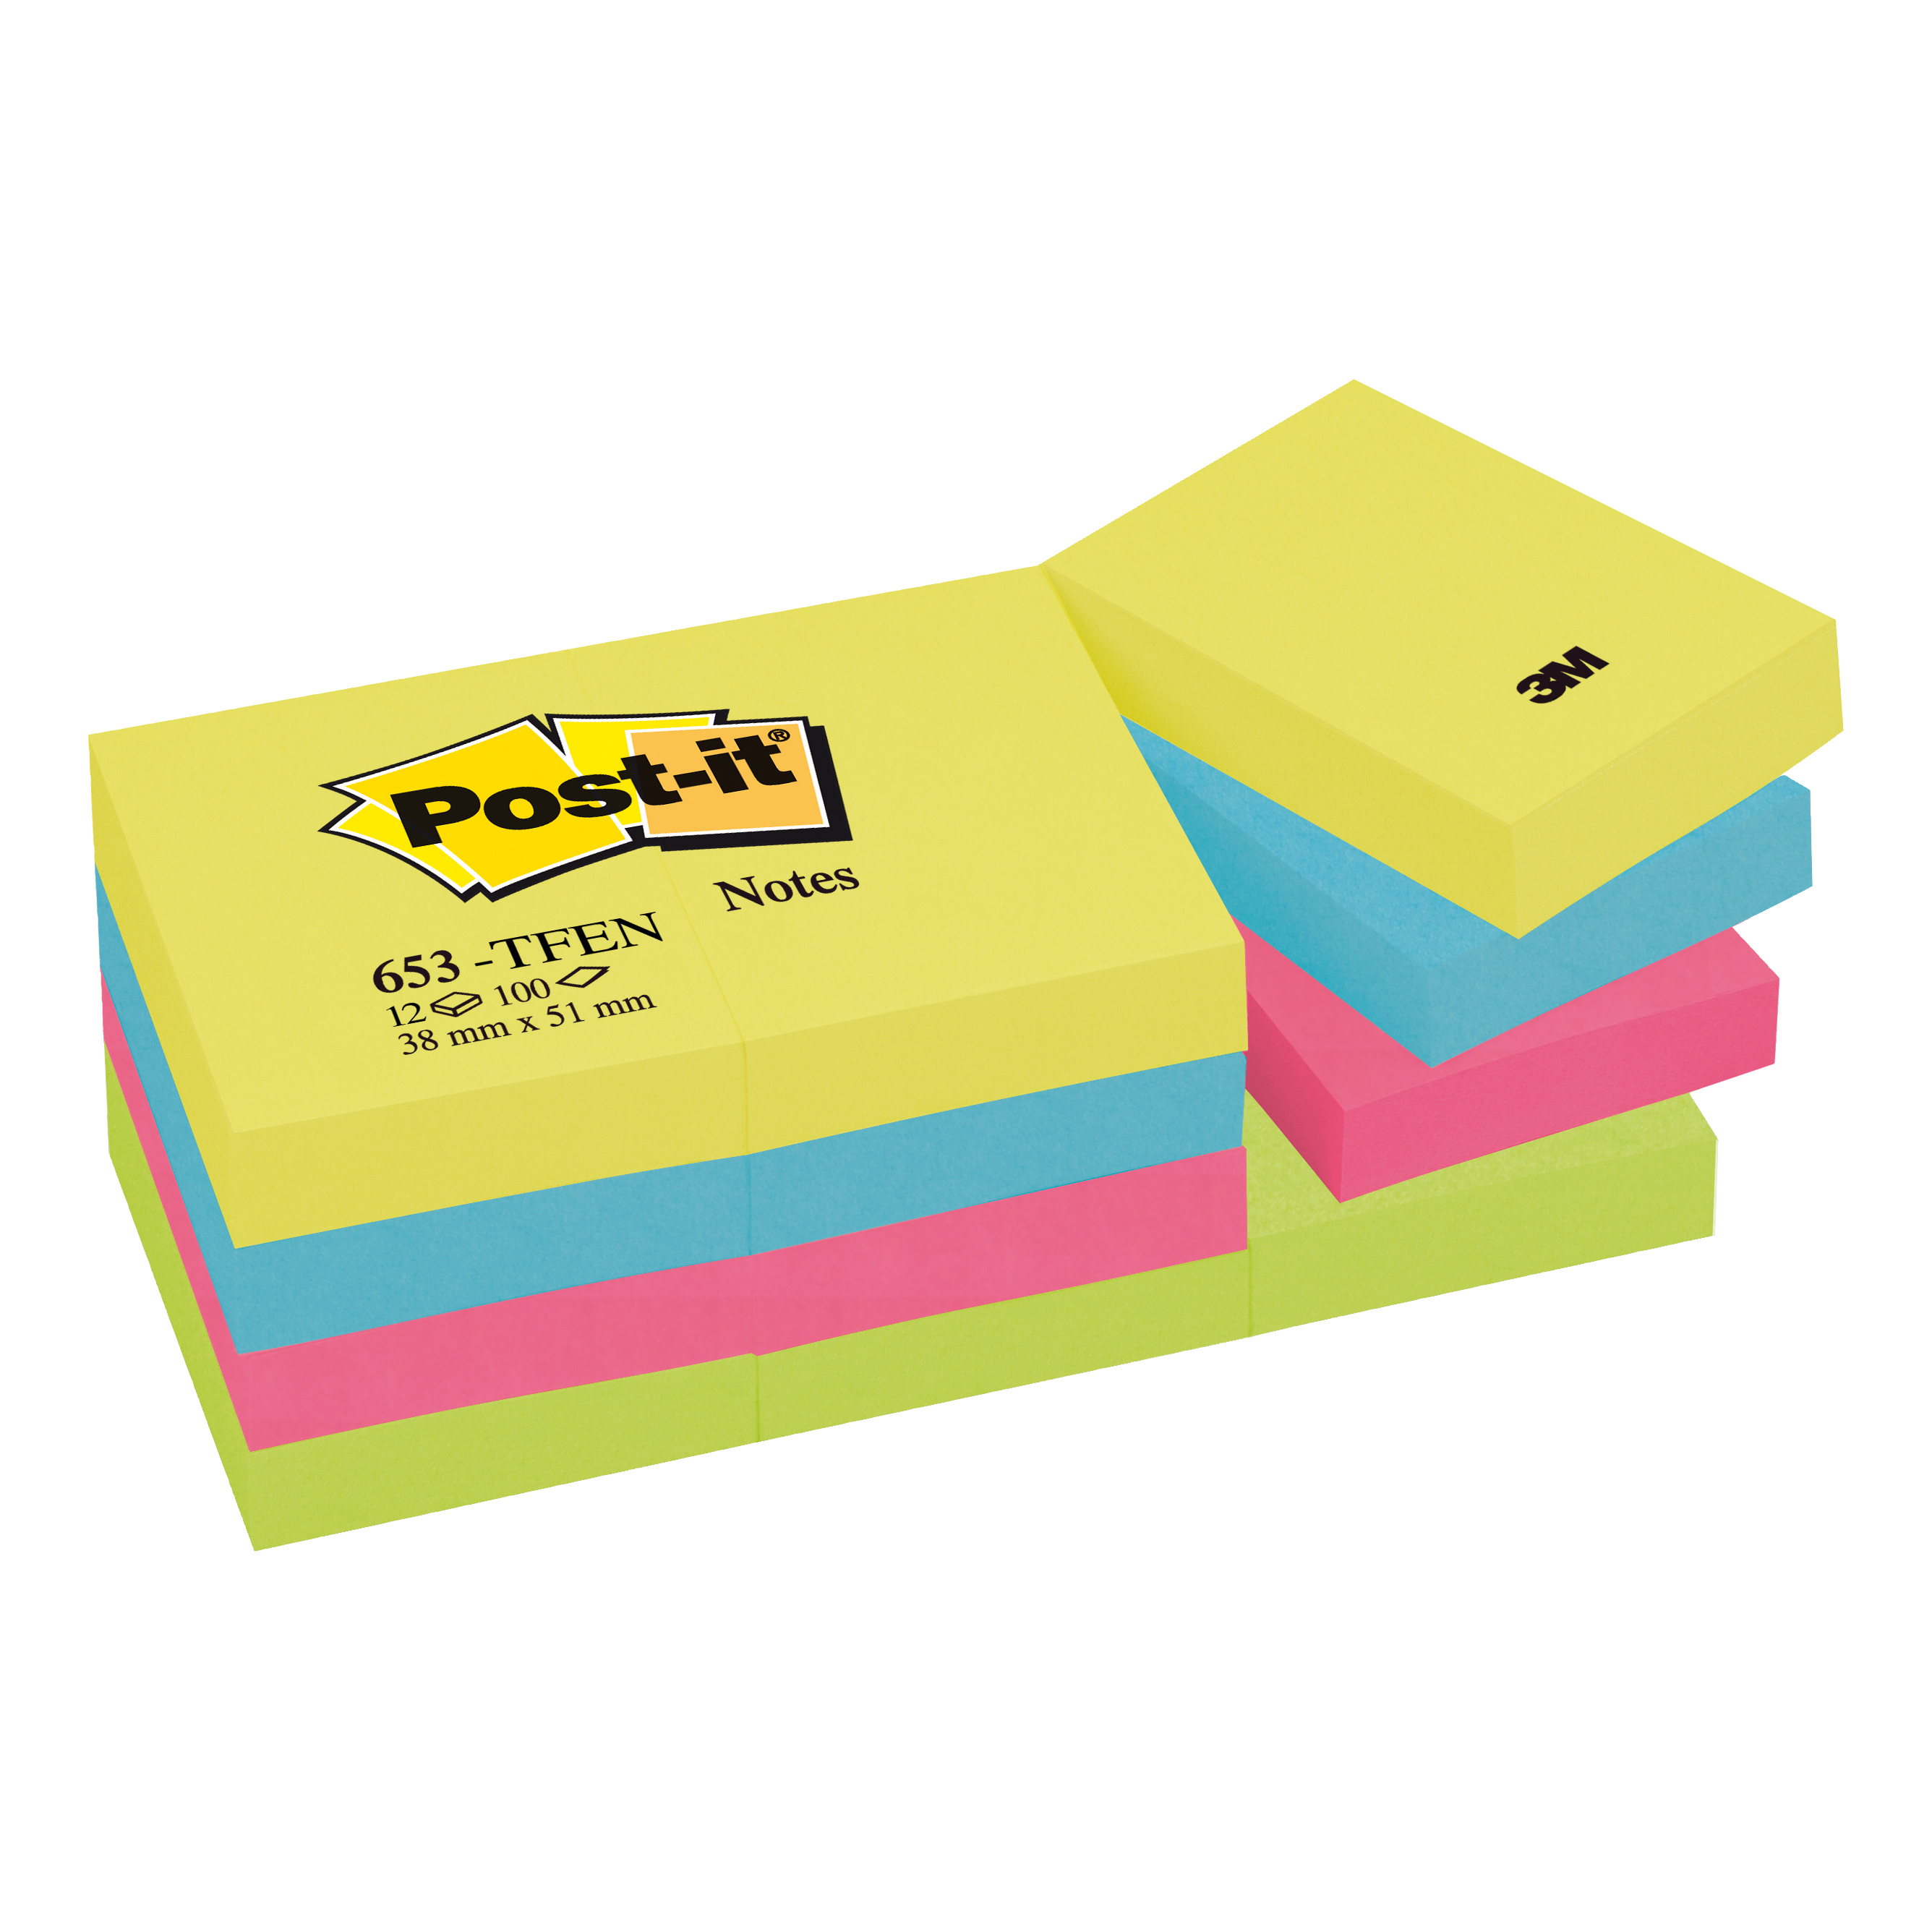 Post-it Colour Notes Pad of 100 Sheets 38x51mm Energetic Palette Rainbow Colours Ref 653TFEN [Pack 12]